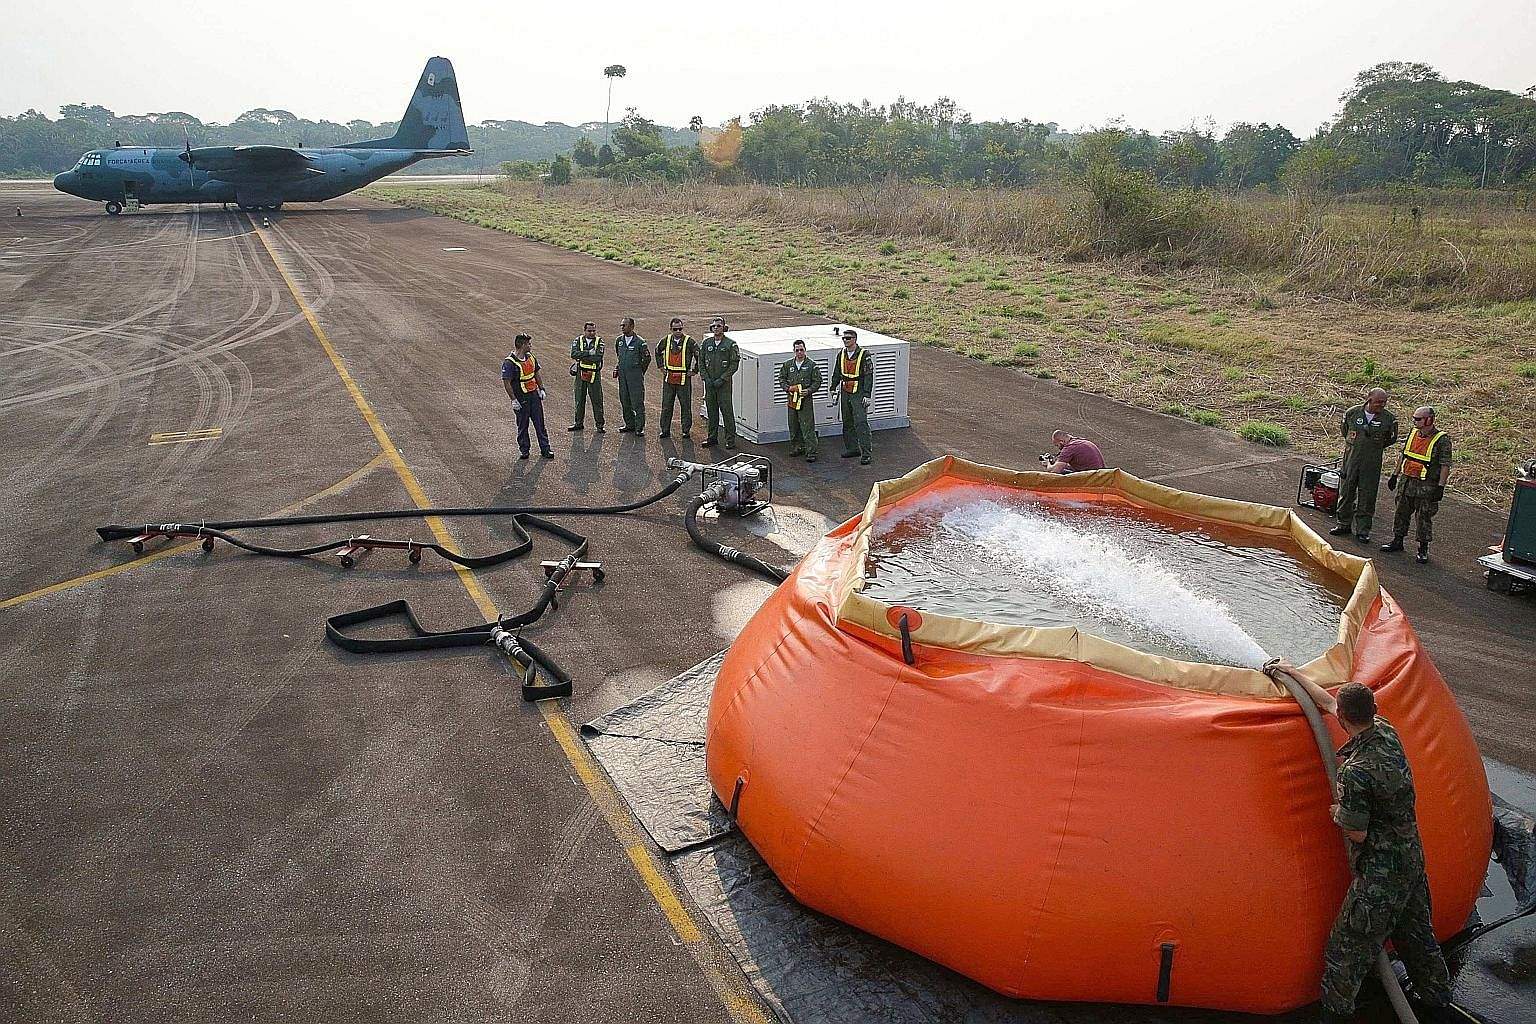 A Hercules C-130 aircraft of the Brazilian Air Force waiting to collect giant water bags to fight fires in the Amazon rainforest, in the state of Rondonia, one of the states most affected by the wildfire crisis. About 60 per cent of the Amazon is in